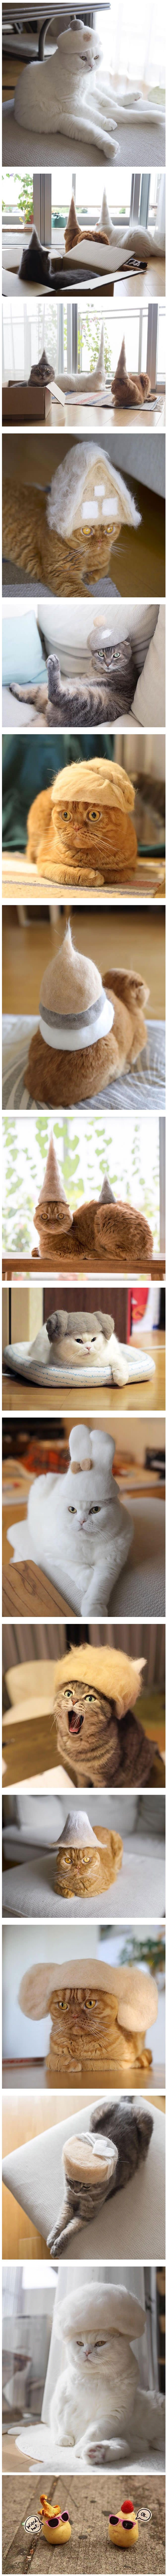 Photographer Makes Hats For His Cats Using Their Own Fluff ~ seriously lol